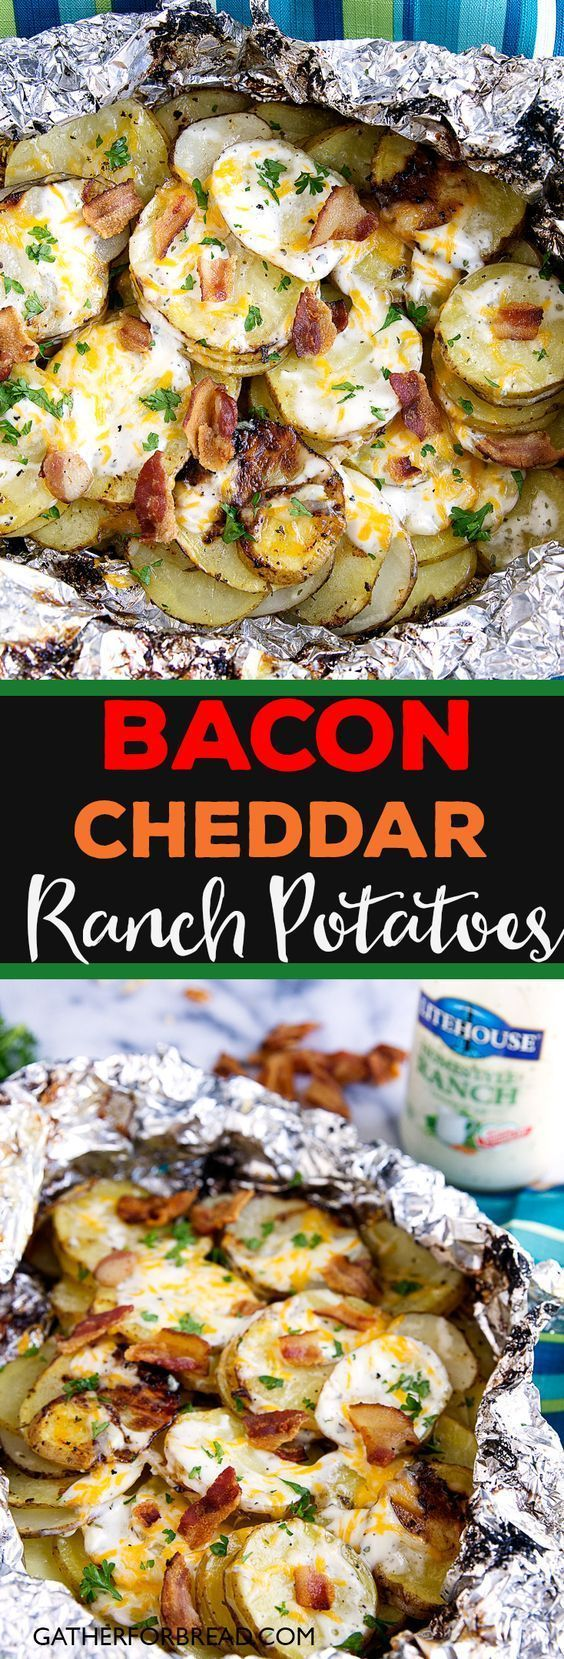 Bacon Ranch Grilled Potatoes - Sliced potatoes flavored with real Ranch dressing, bacon and cheese for an ultimate summer grilled side dish. (Bbq Recipes Potatoes)